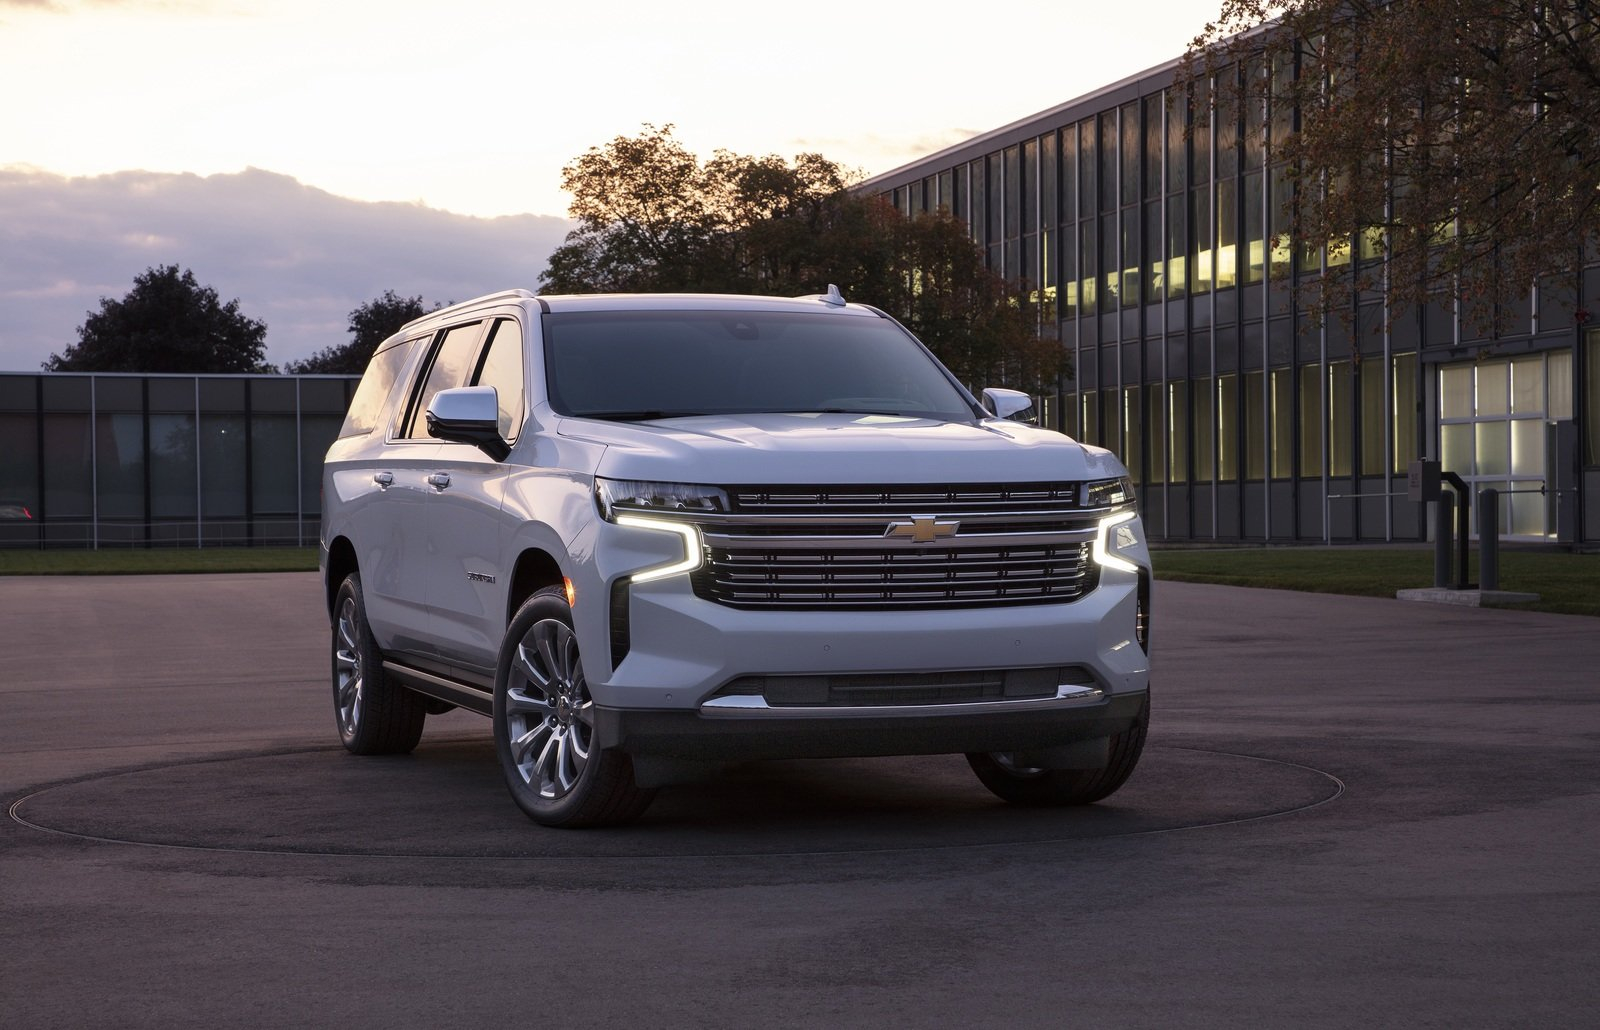 2021 Chevy Suburban Can A 2021 Chevy Spark Be Flat Towed